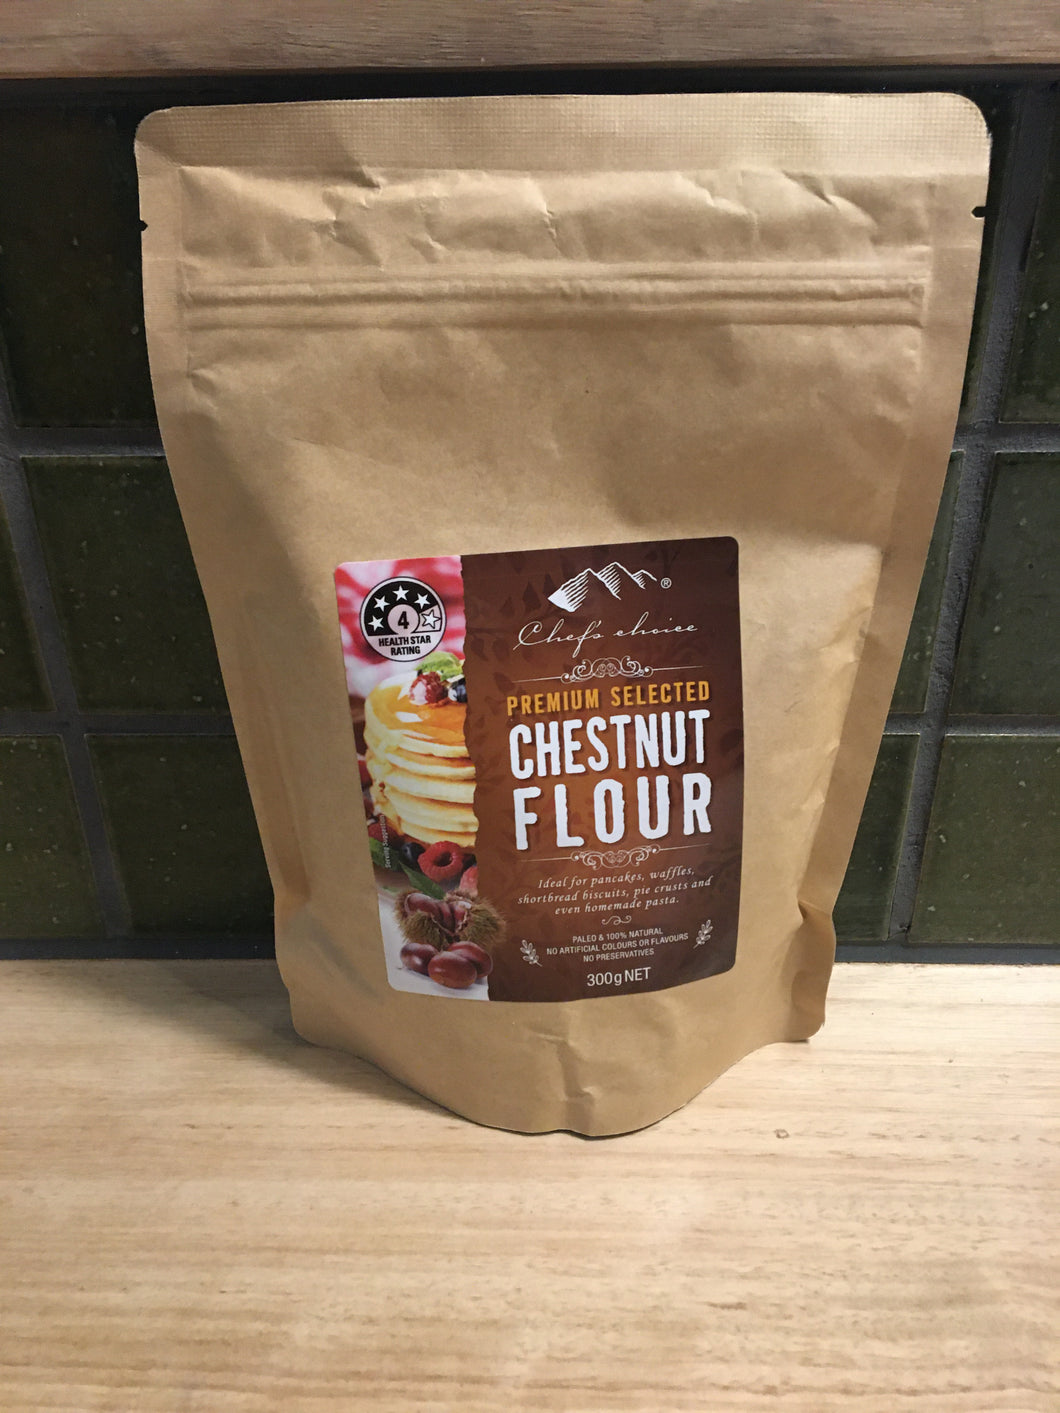 Chef's Choice Chestnut Flour 300g